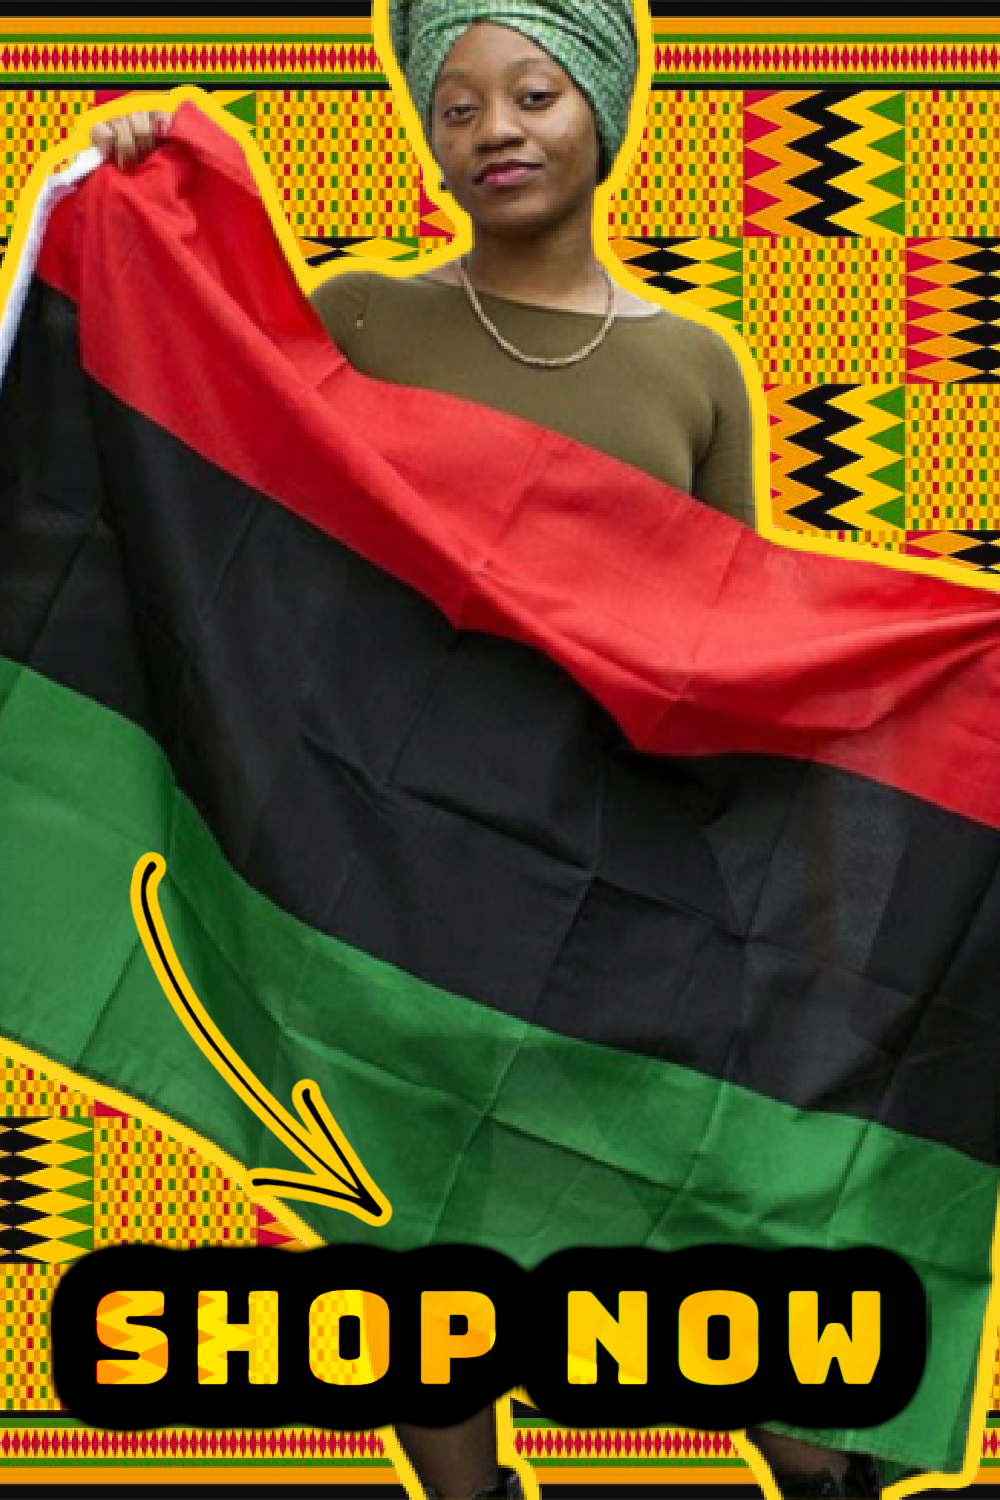 Rbg Flag For Sale In 2020 Black And Red Red Black Green Flag Rbg